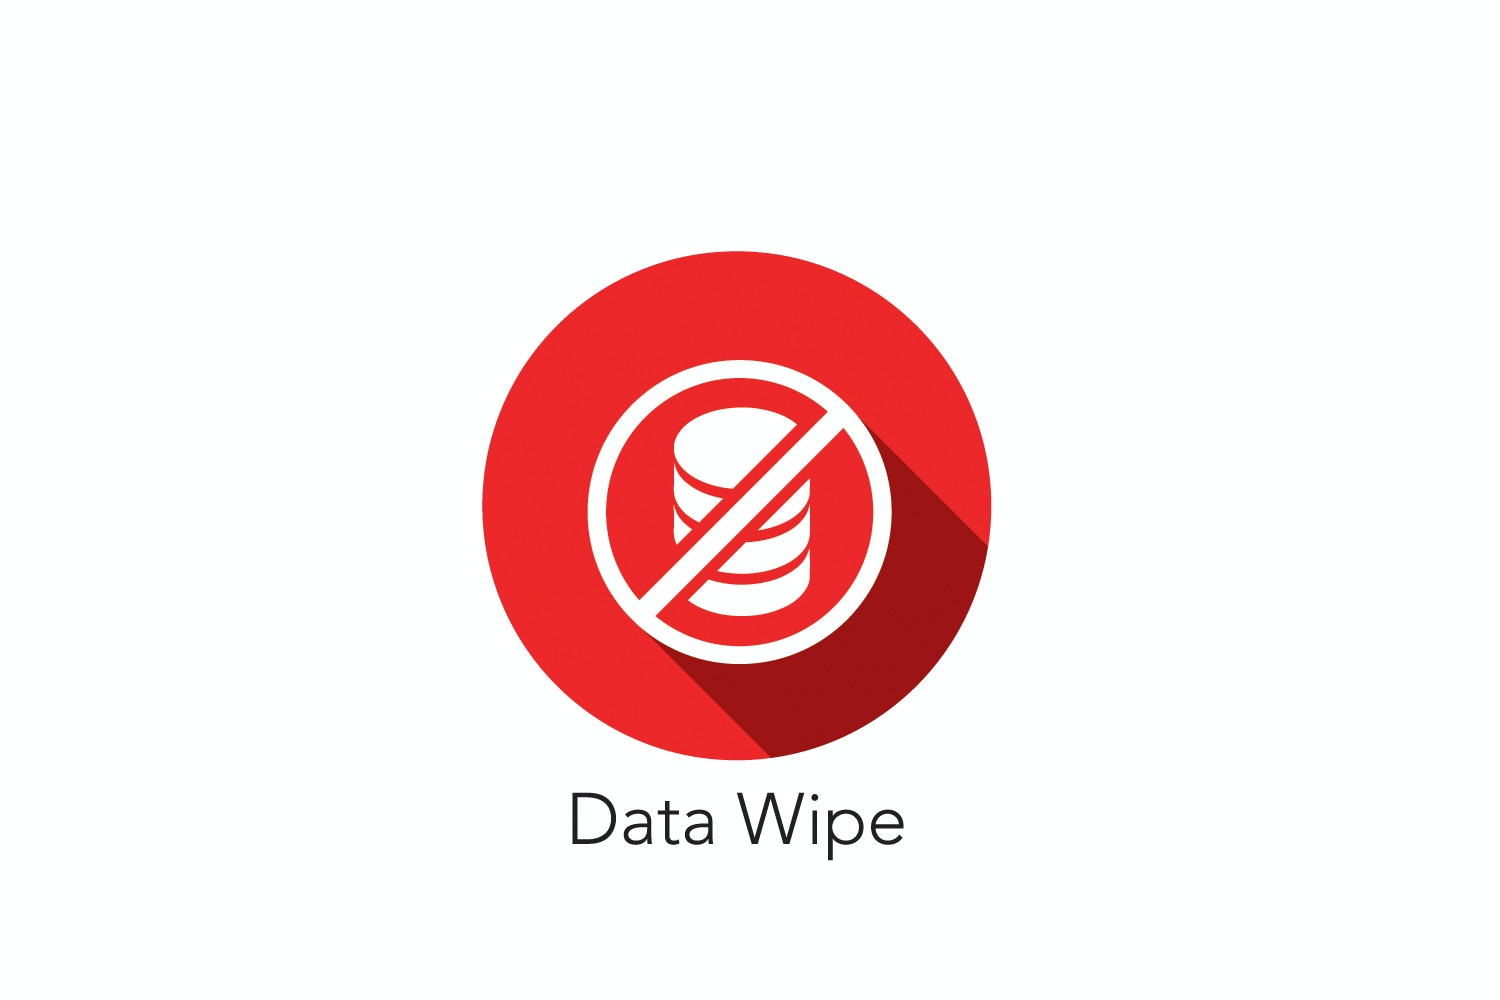 LoveTech | Data Wipe